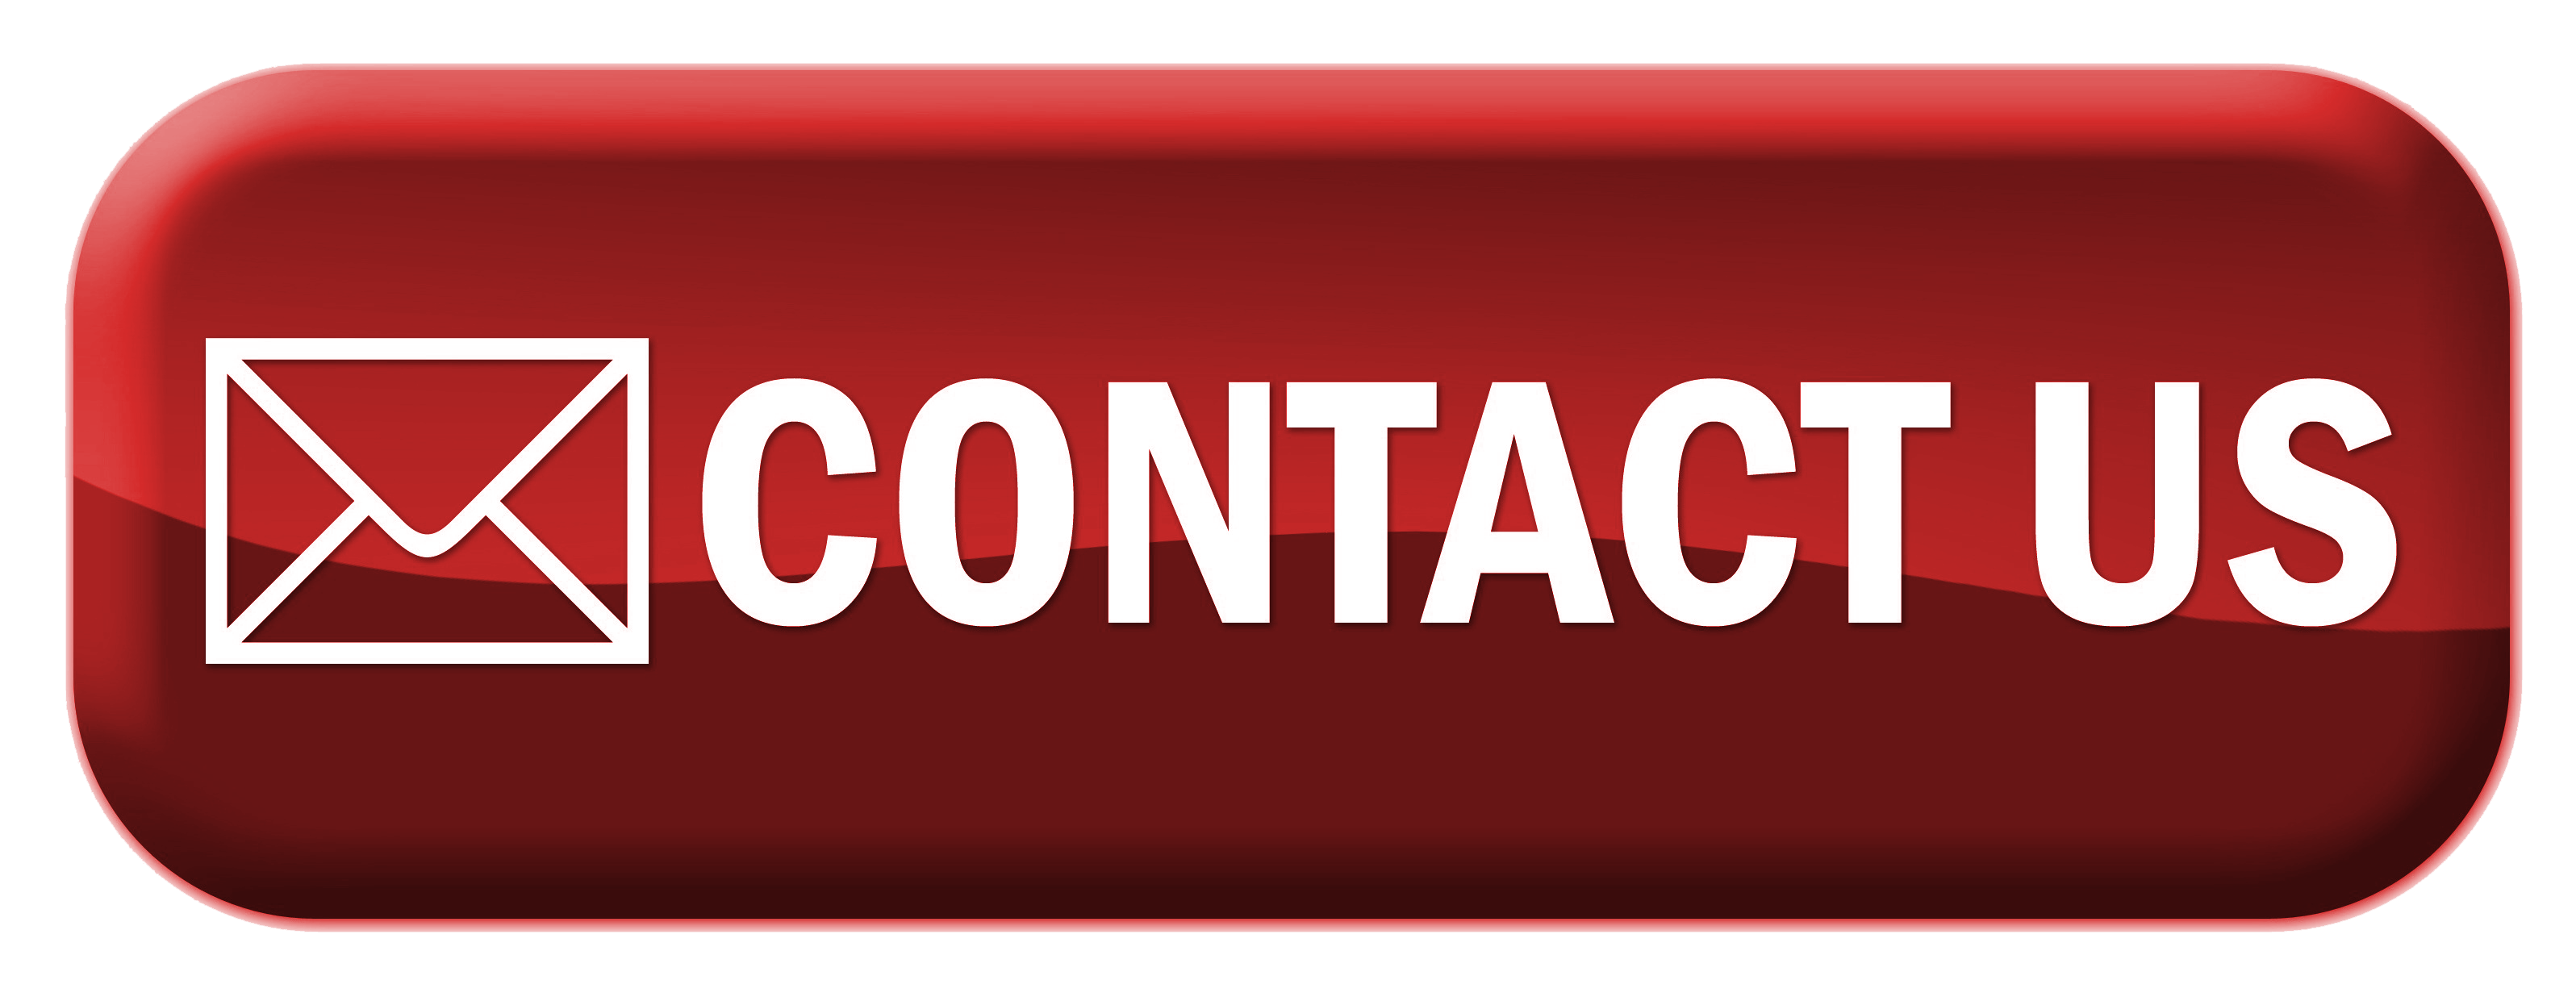 Contact us button png. Red top notch garage